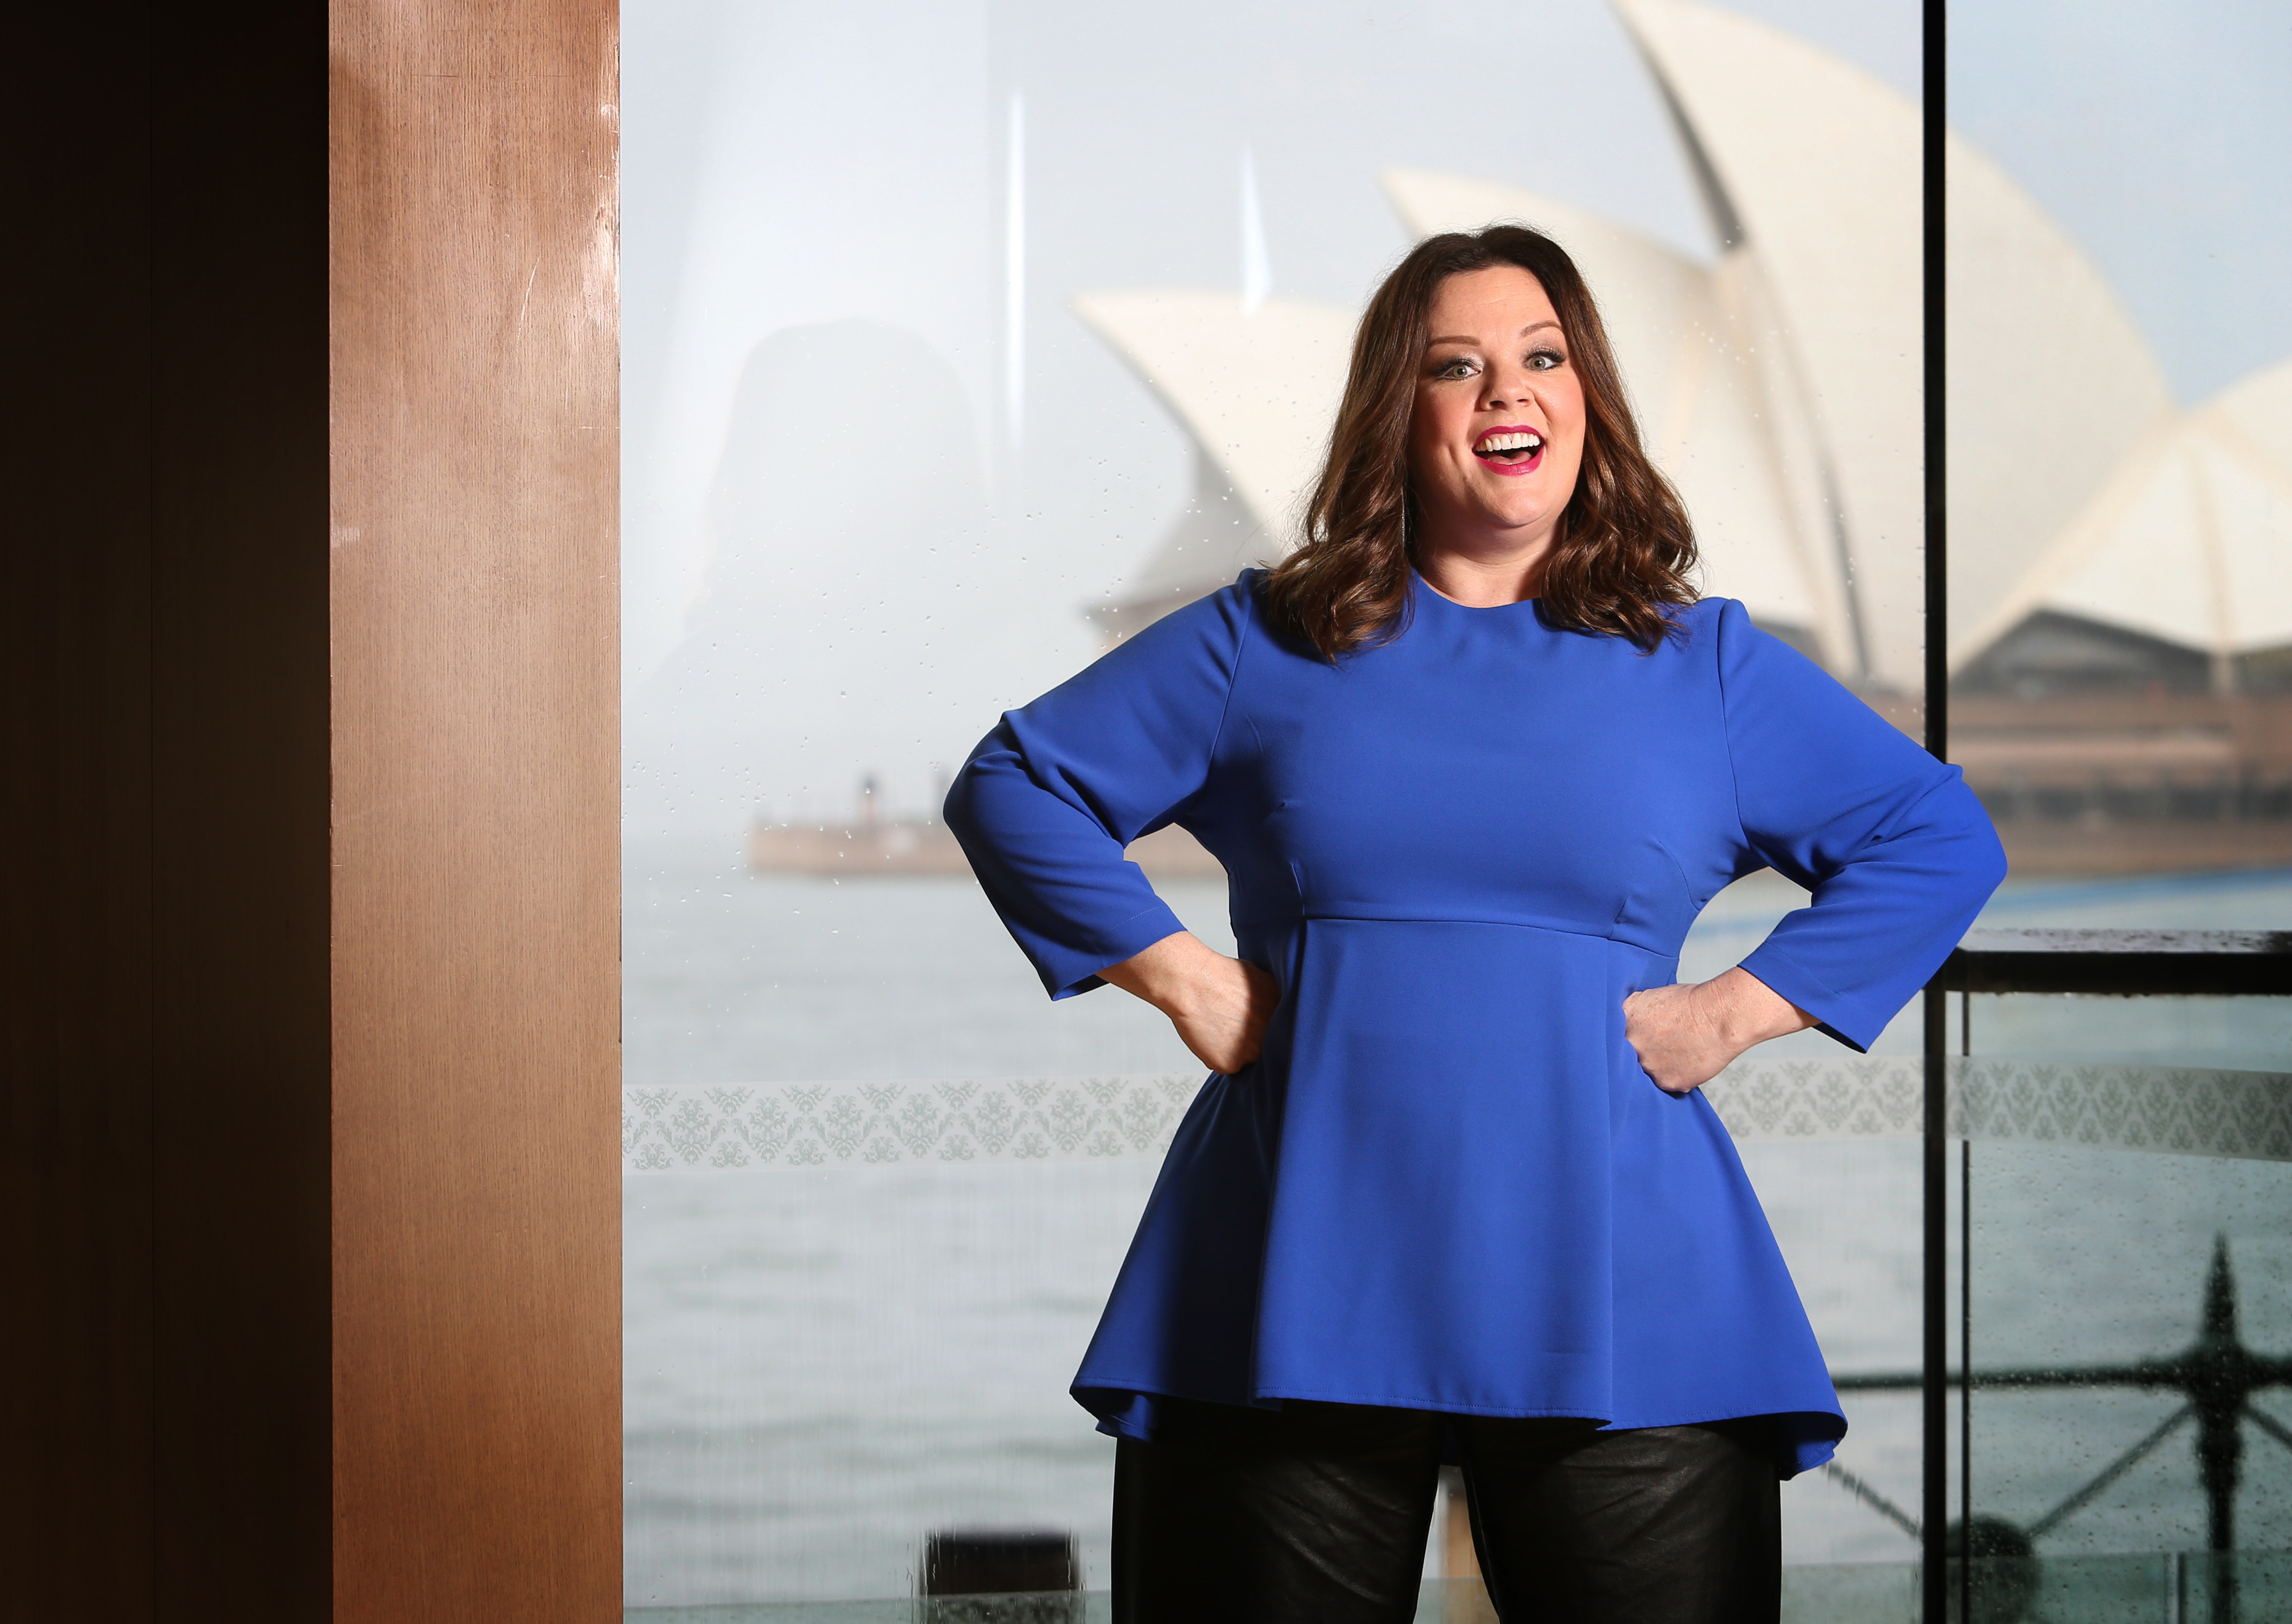 American actress Melissa McCarthy poses during a photo shoot at the Park Hyatt Hotel in Sydney, New South Wales ahead of the premiere of her new film 'The Boss'.